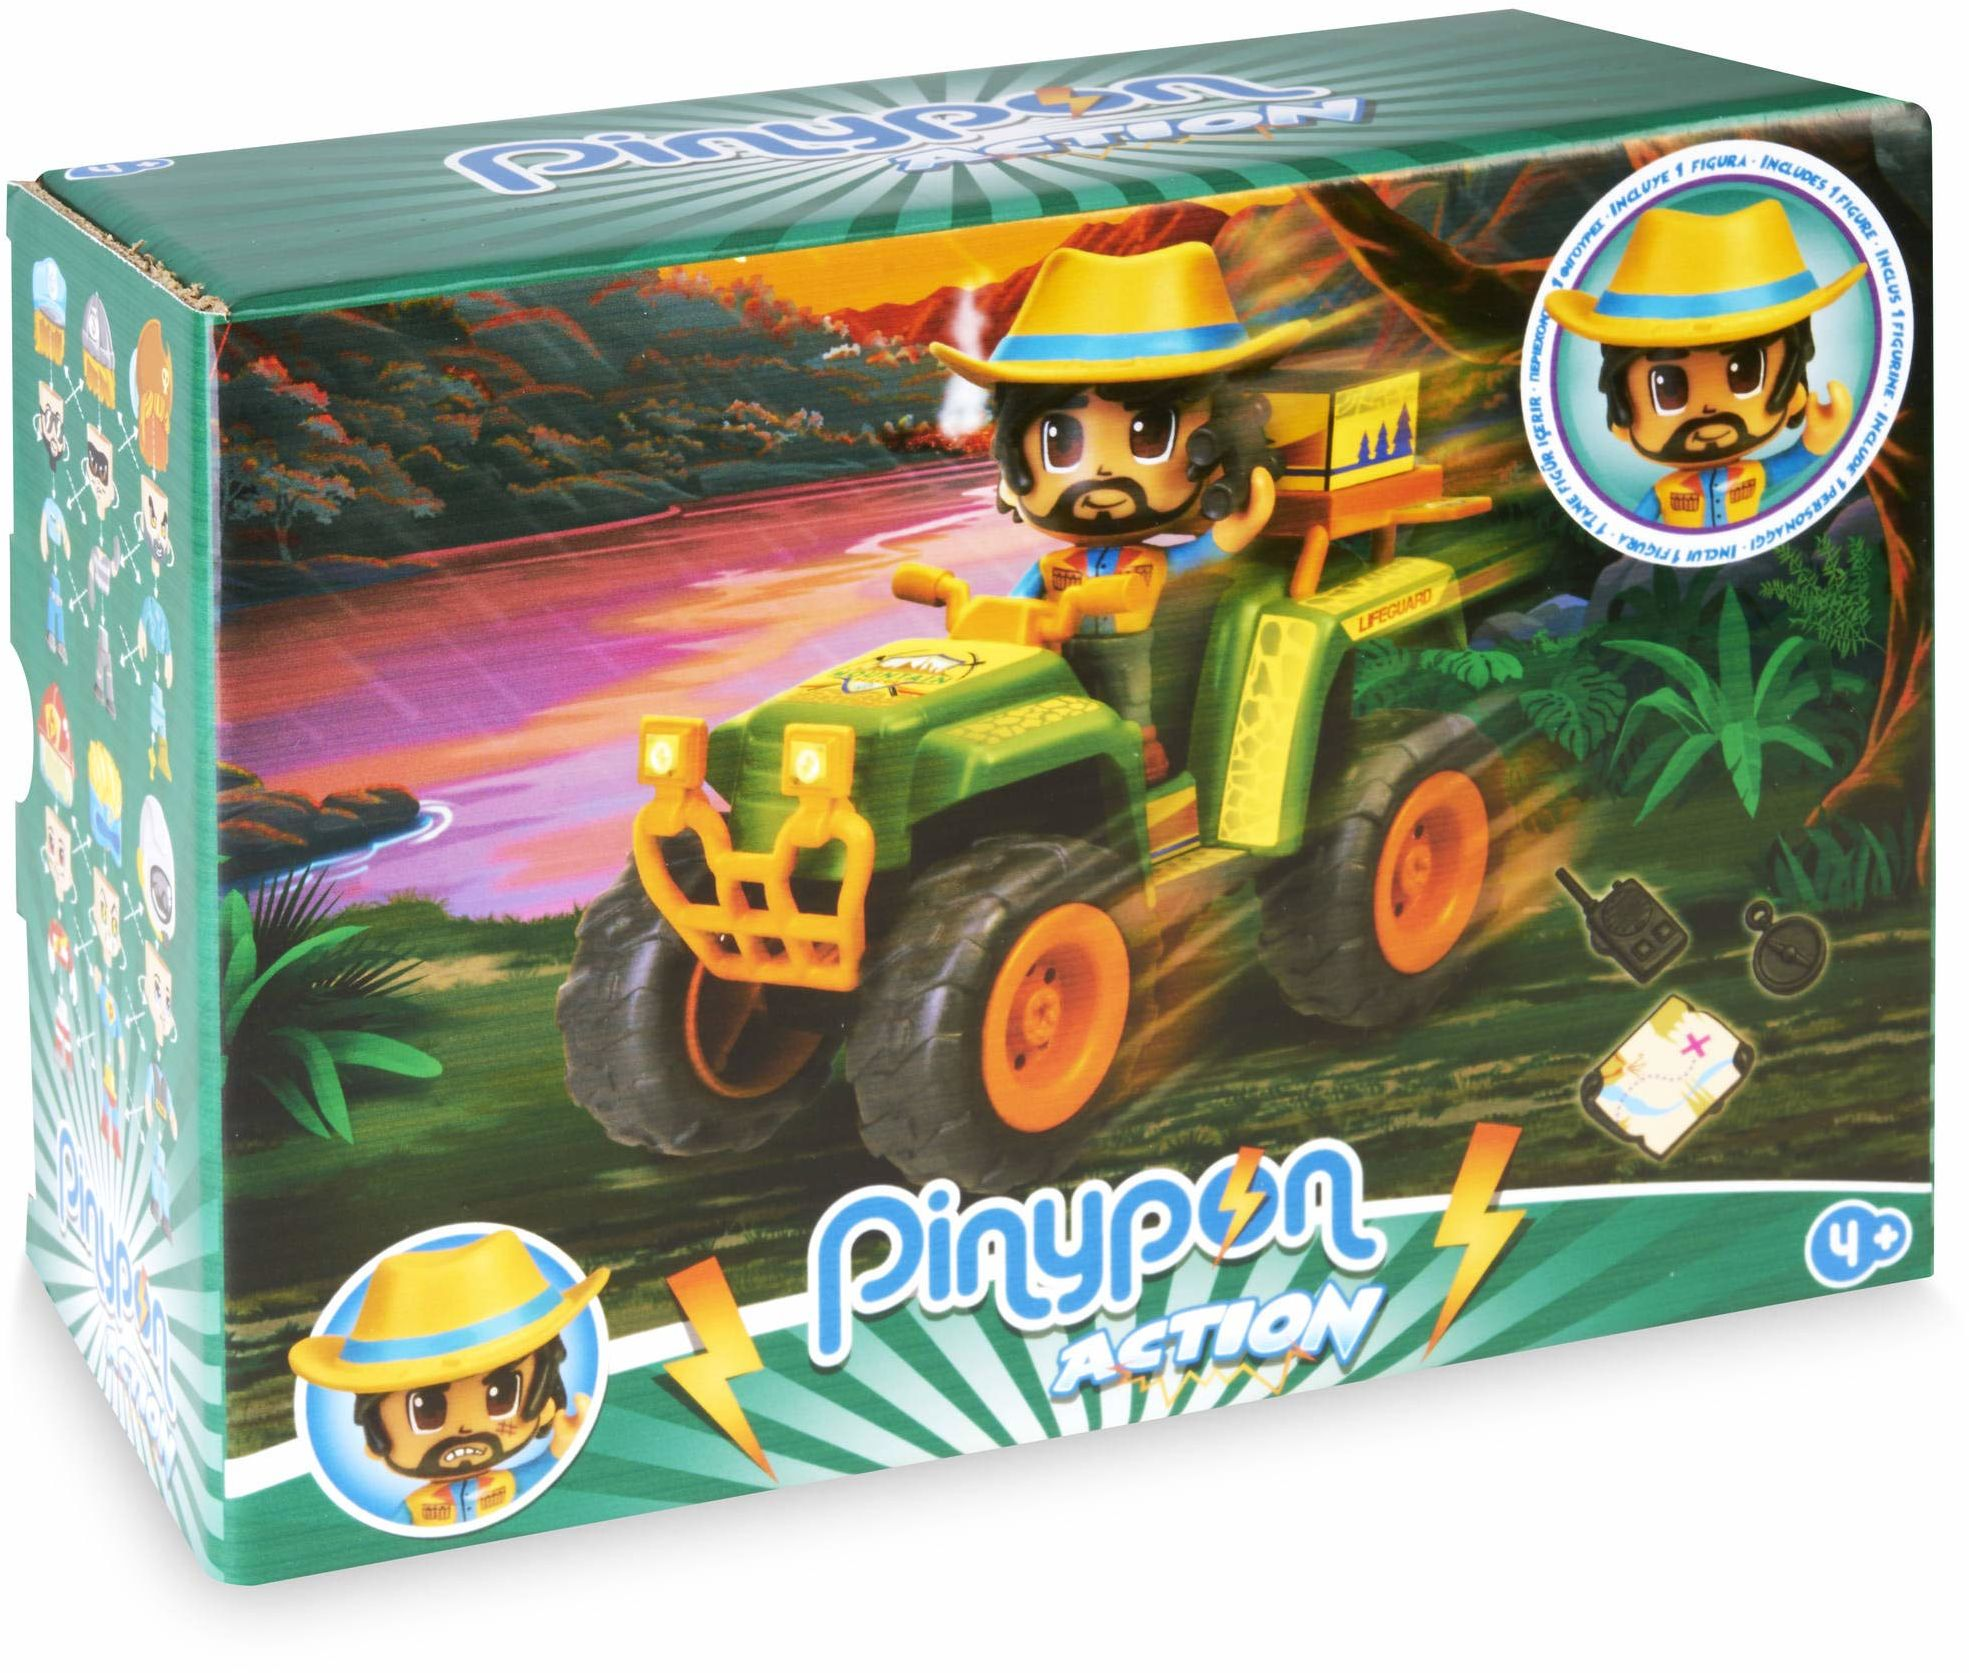 Pinypon Action 700016302 figurka Action